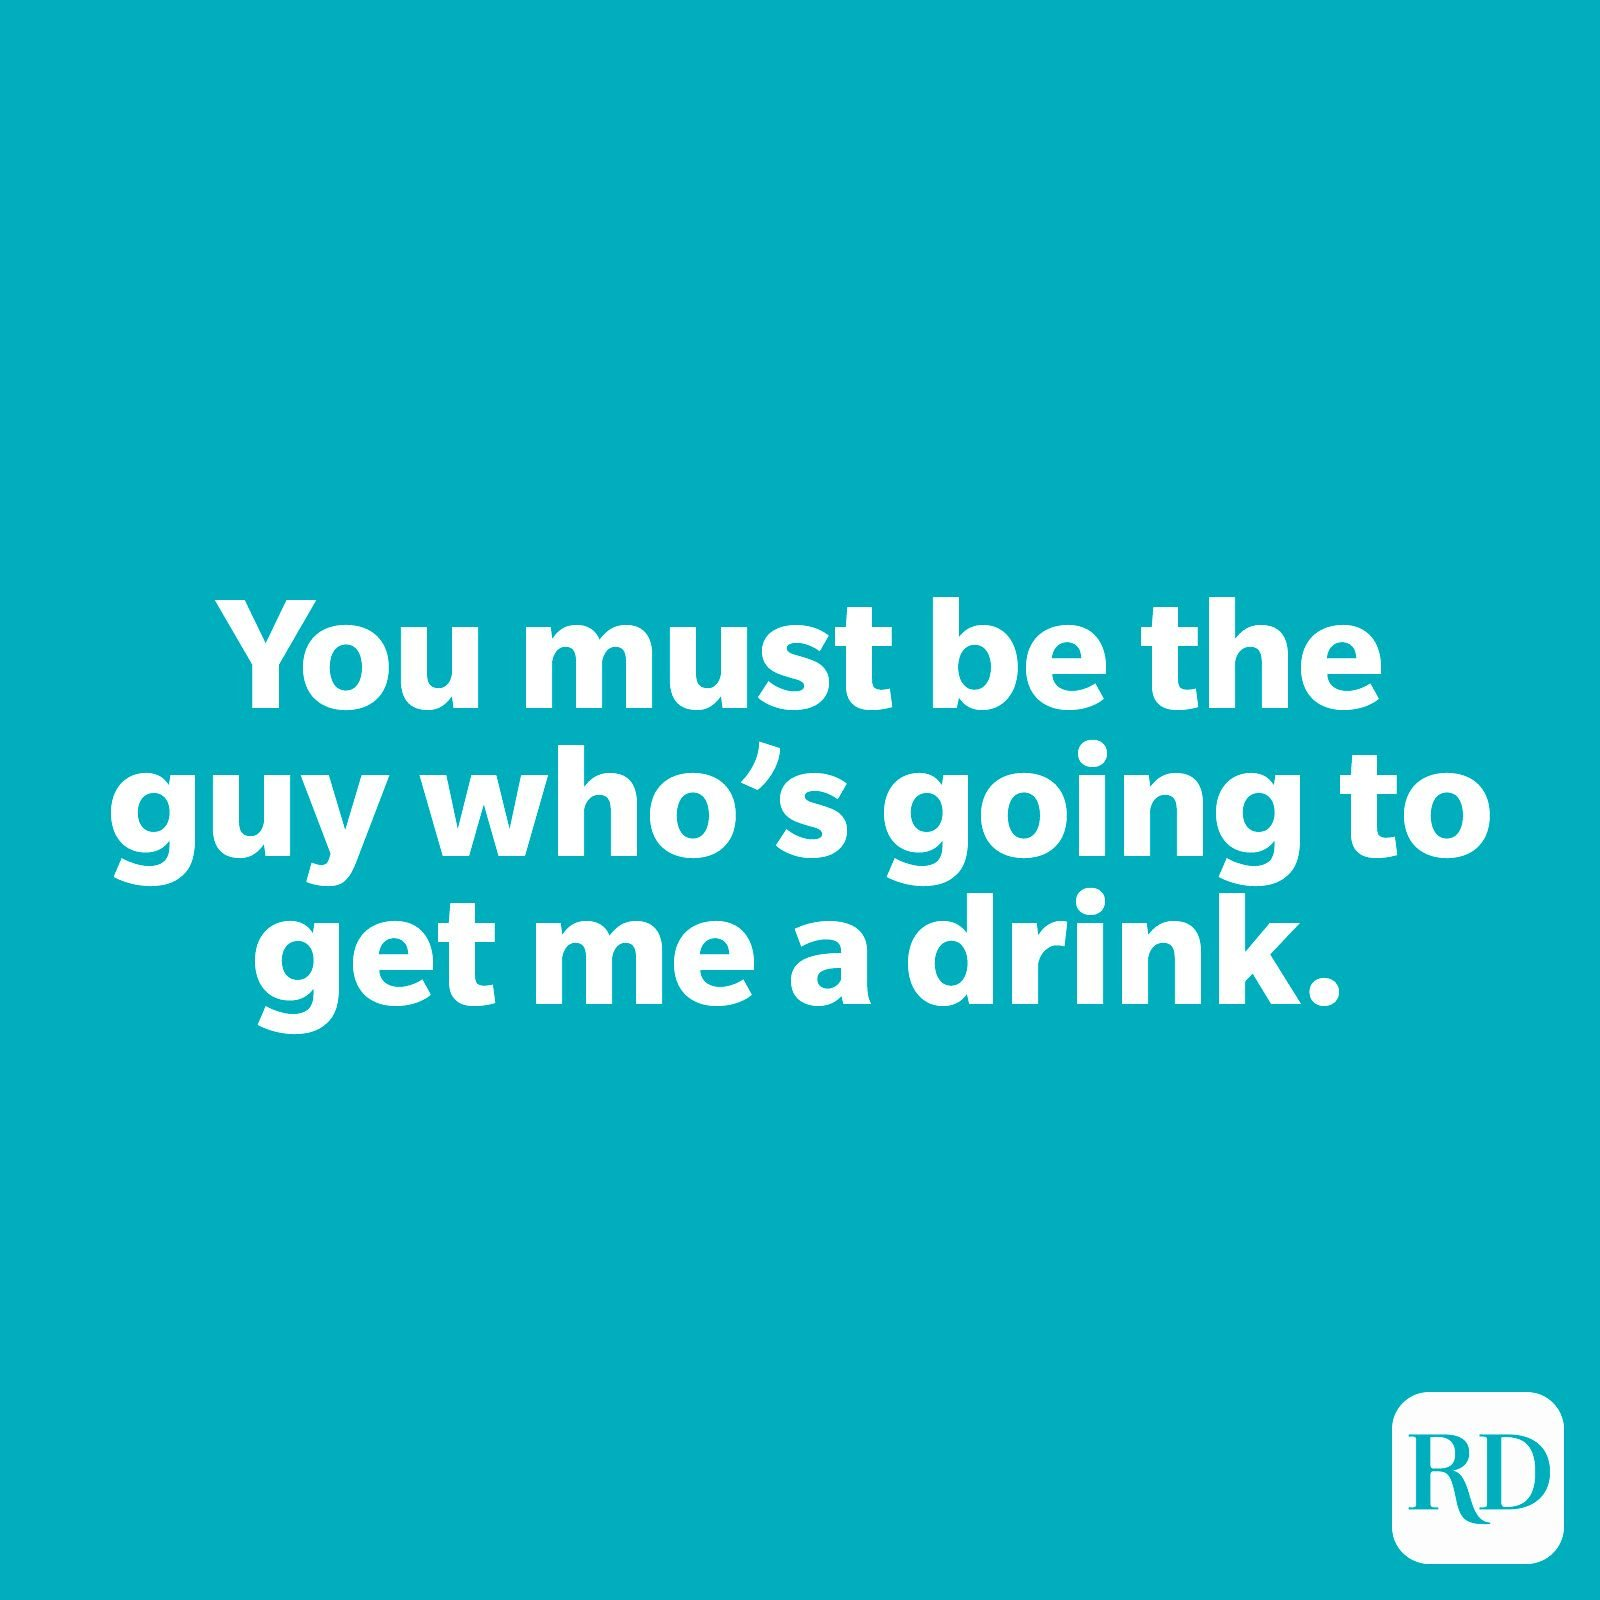 You must be the guy who's going to get me a drink.